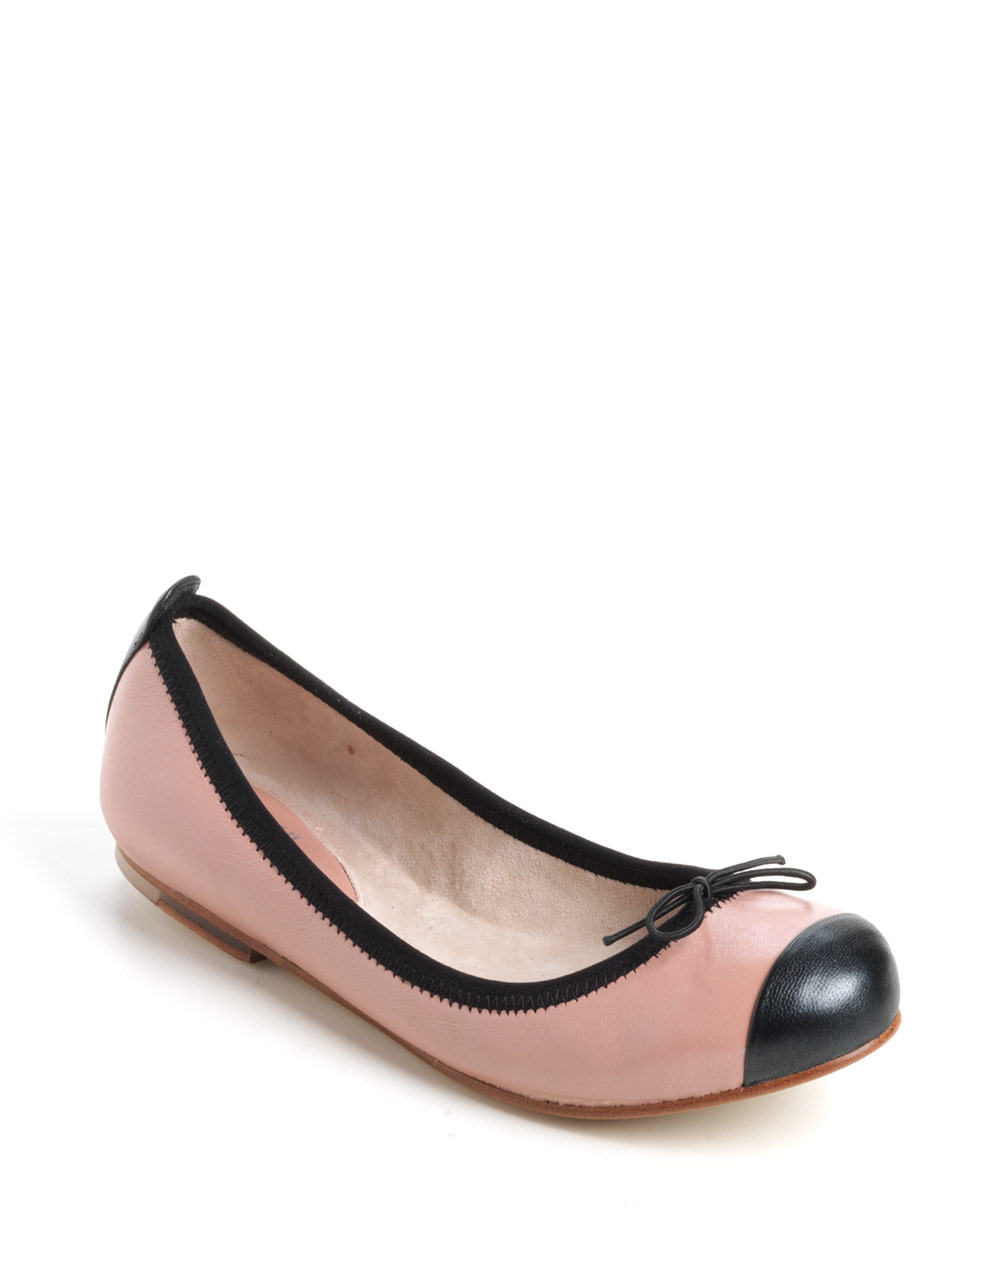 bloch classica pearl leather ballet flats in pink pink